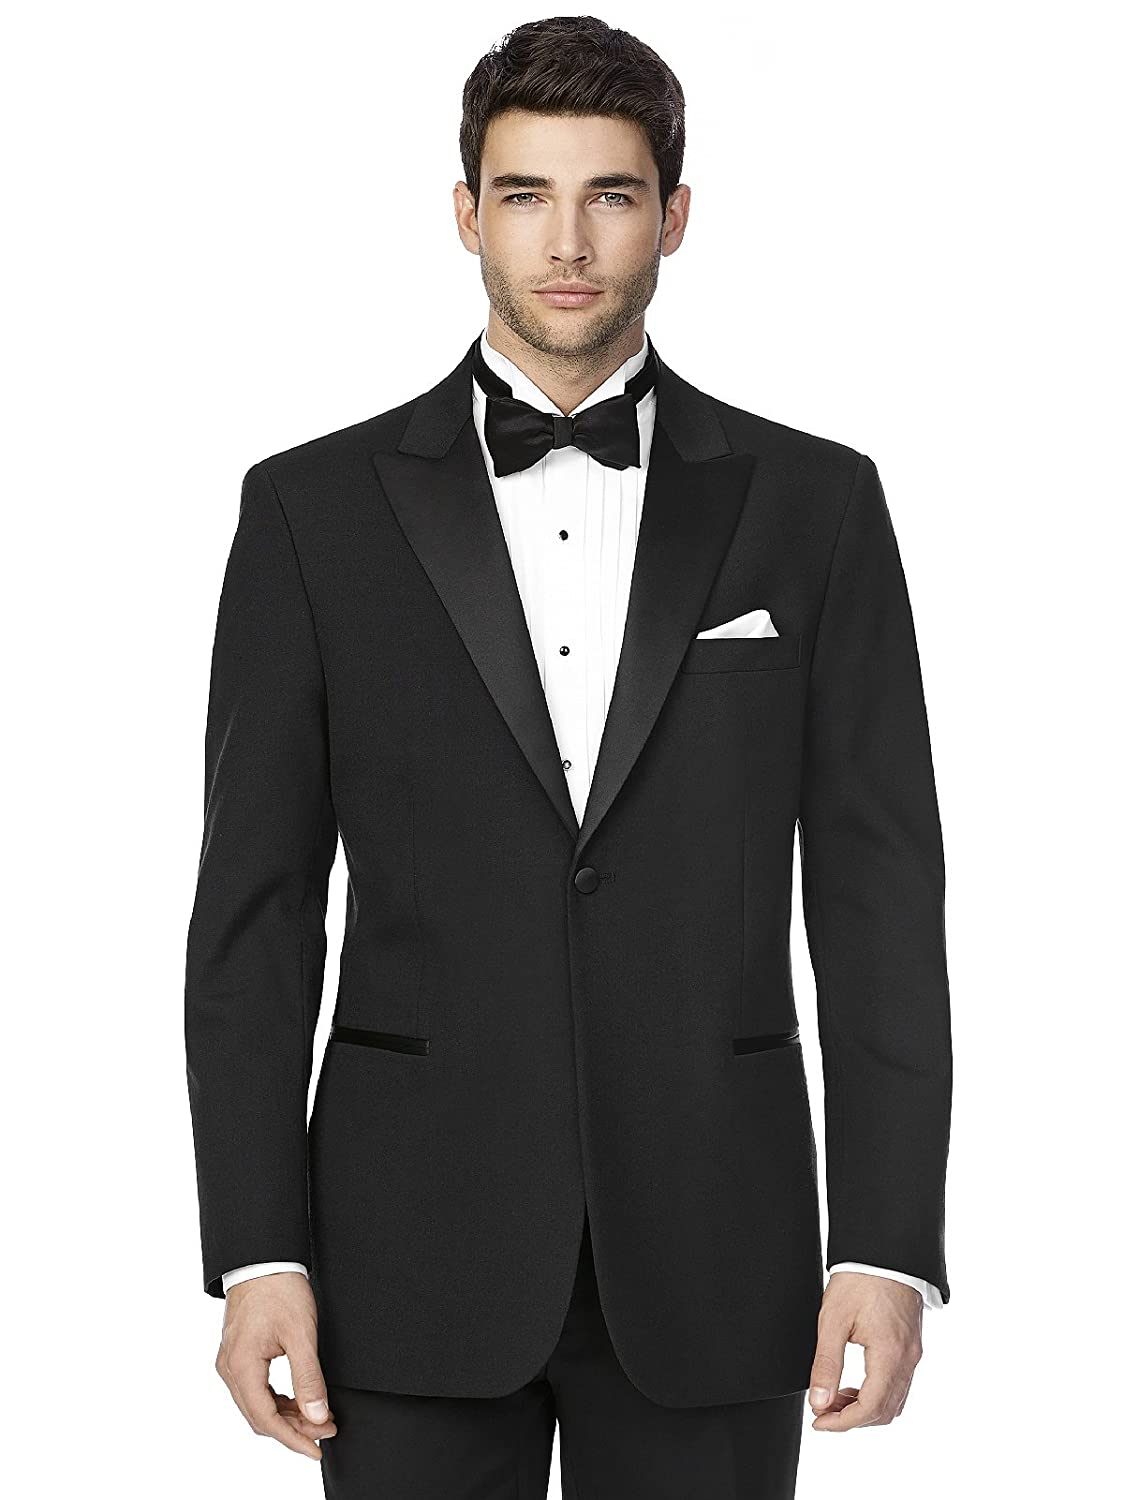 After Six Men's 'The Edward' Peak Collar Wool Tuxedo Jacket by Dessy Group